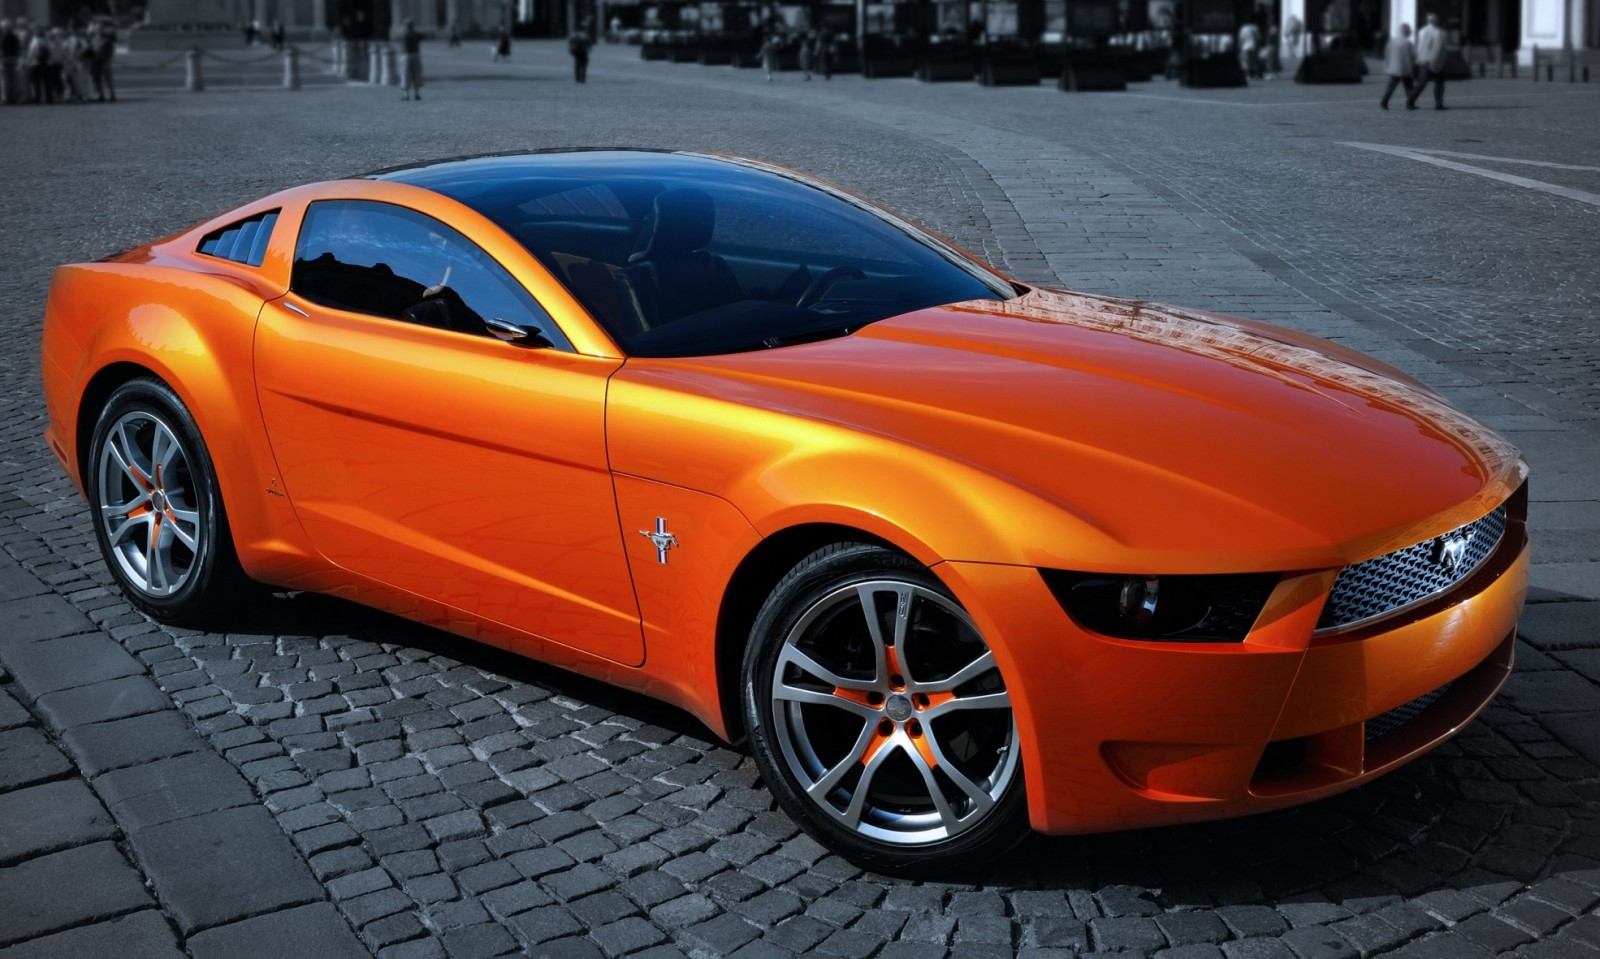 2006 Giugiaro Ford Mustang Concept Was Ringer vs In-House Ford Designs 20